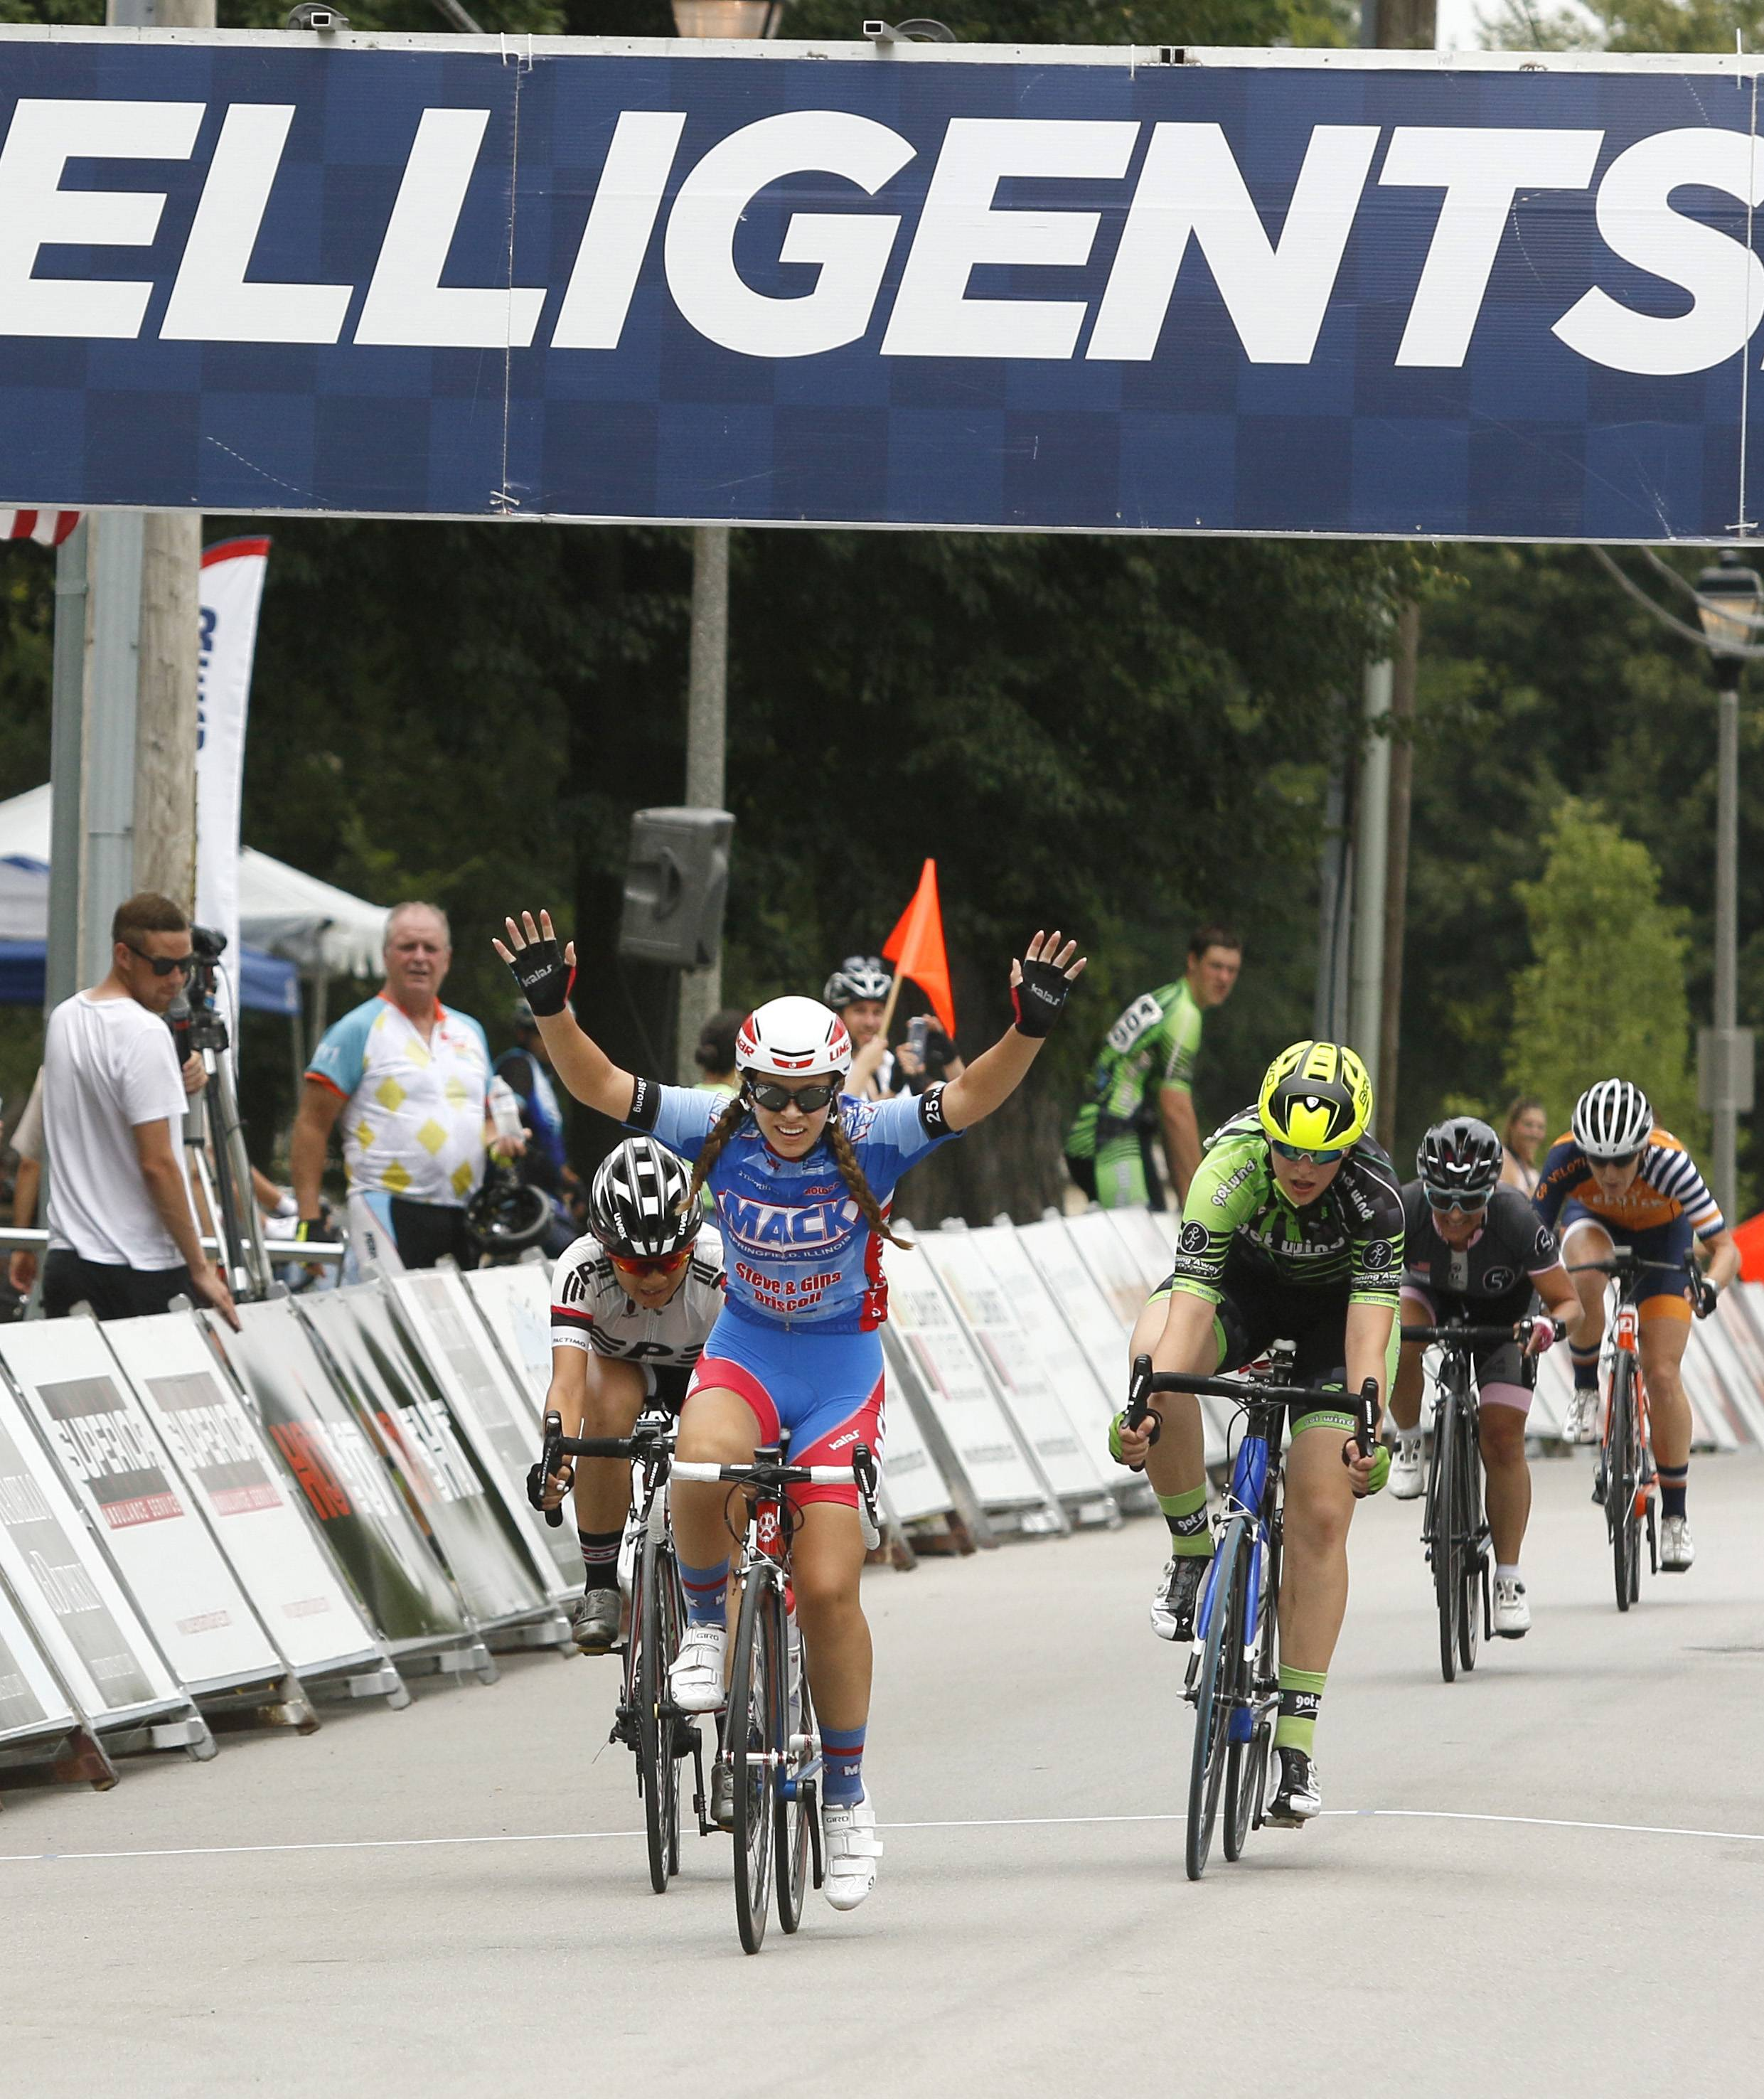 Marissa Carter of St. Charles, Missouri, celebrates after finishing first in one of the women's race categories at the fifth annual Elmhurst Cycling Classic, part of the 10-race Intelligensia Cup. Lydia Chinchilla of Glen Ellyn, right, finished second.